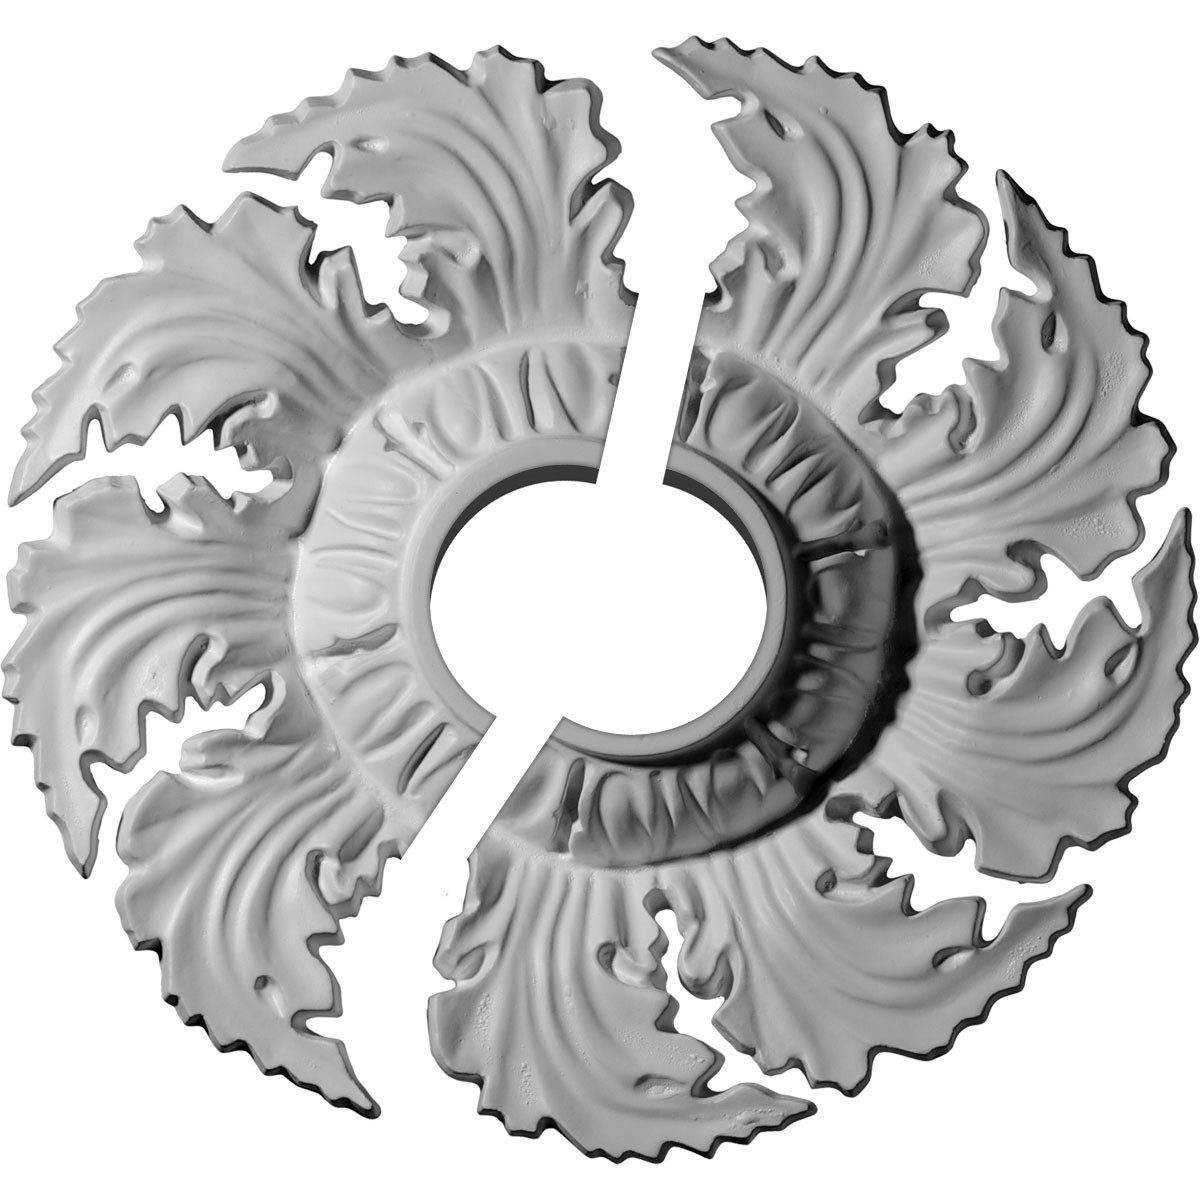 "EM-CM14NE2-03500 - 14 5/8""OD x 3 1/2""ID x 2 1/4""P Needham Ceiling Medallion, Two Piece (Fits Canopies up to 4 1/4"")"